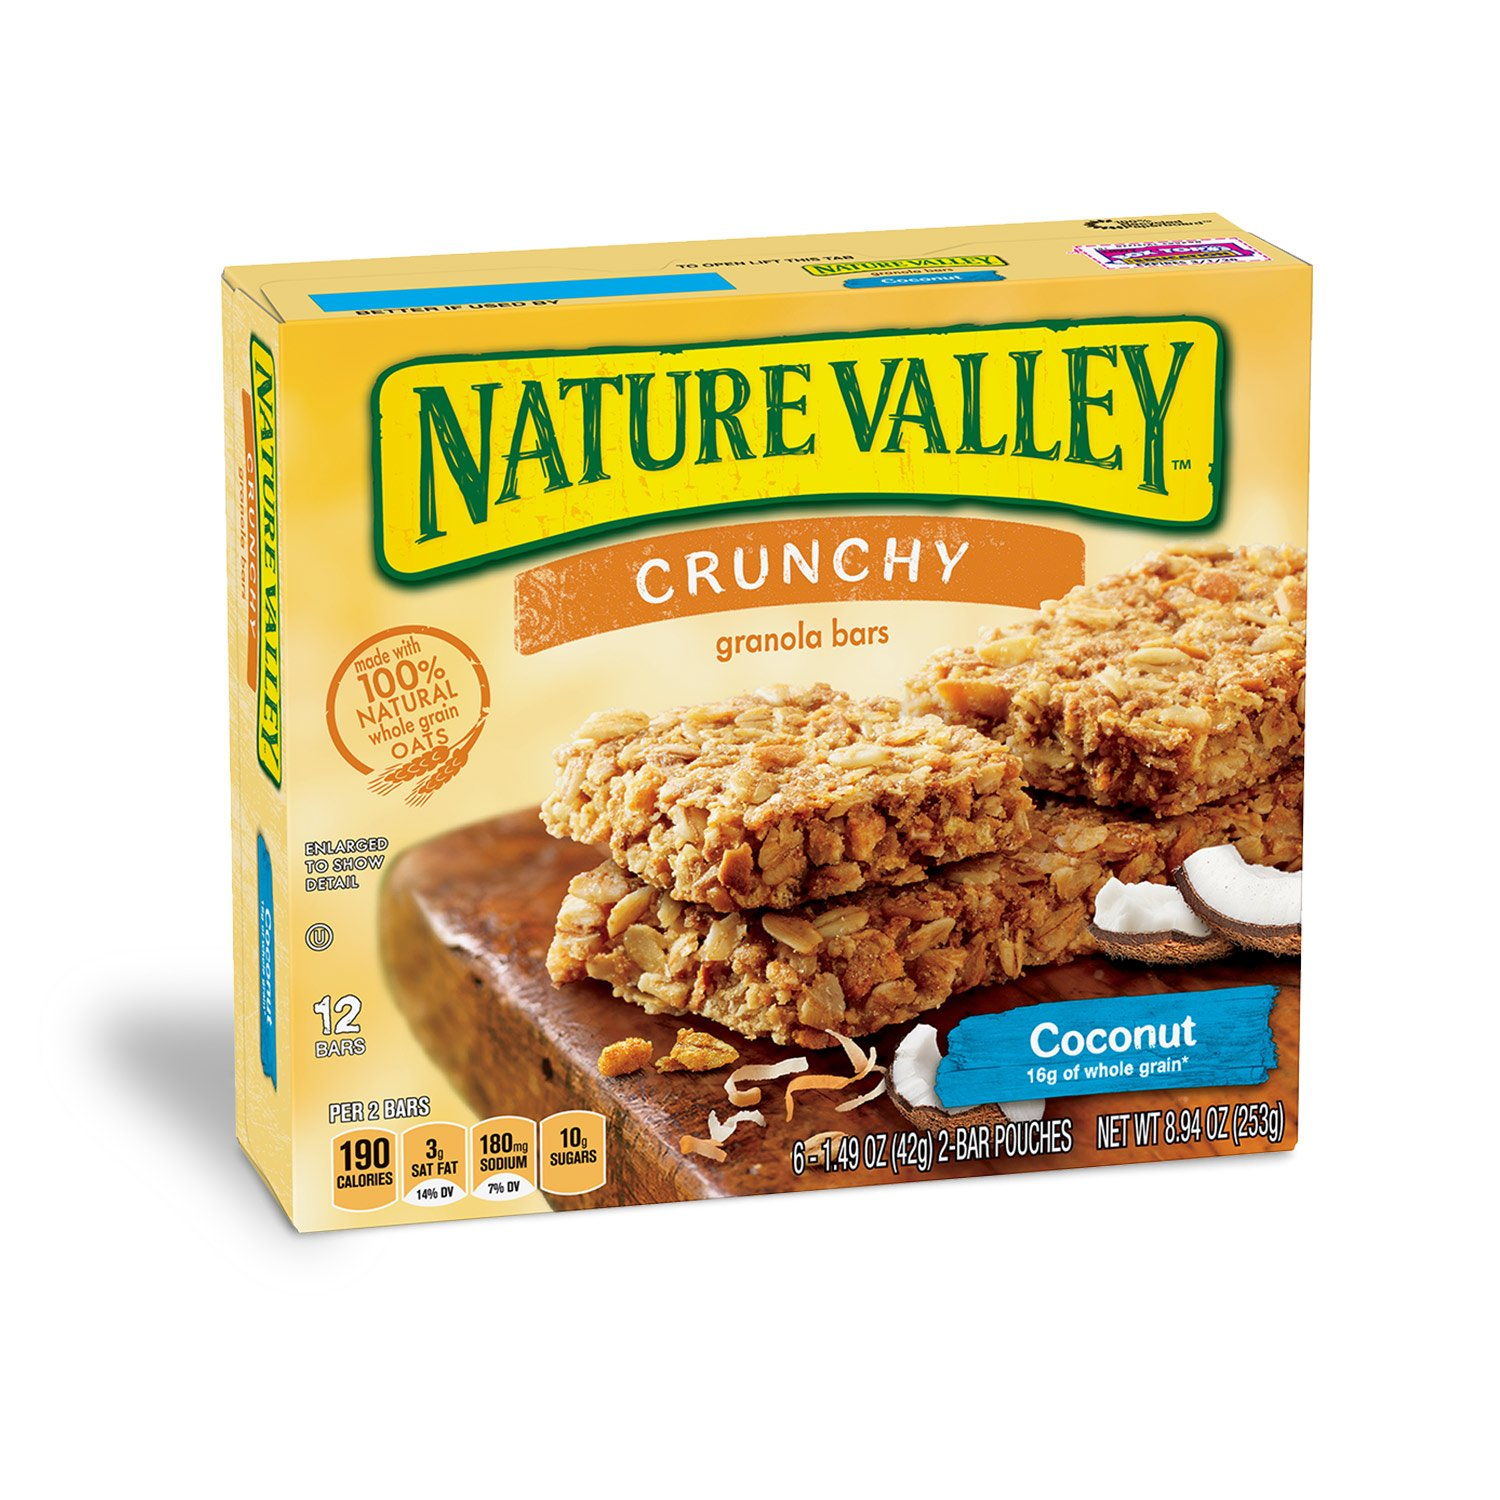 Nature Valley Crunchy Granola Bar Coconut 12 Bars In 6 - 1.49 oz 2-Bar Pouches